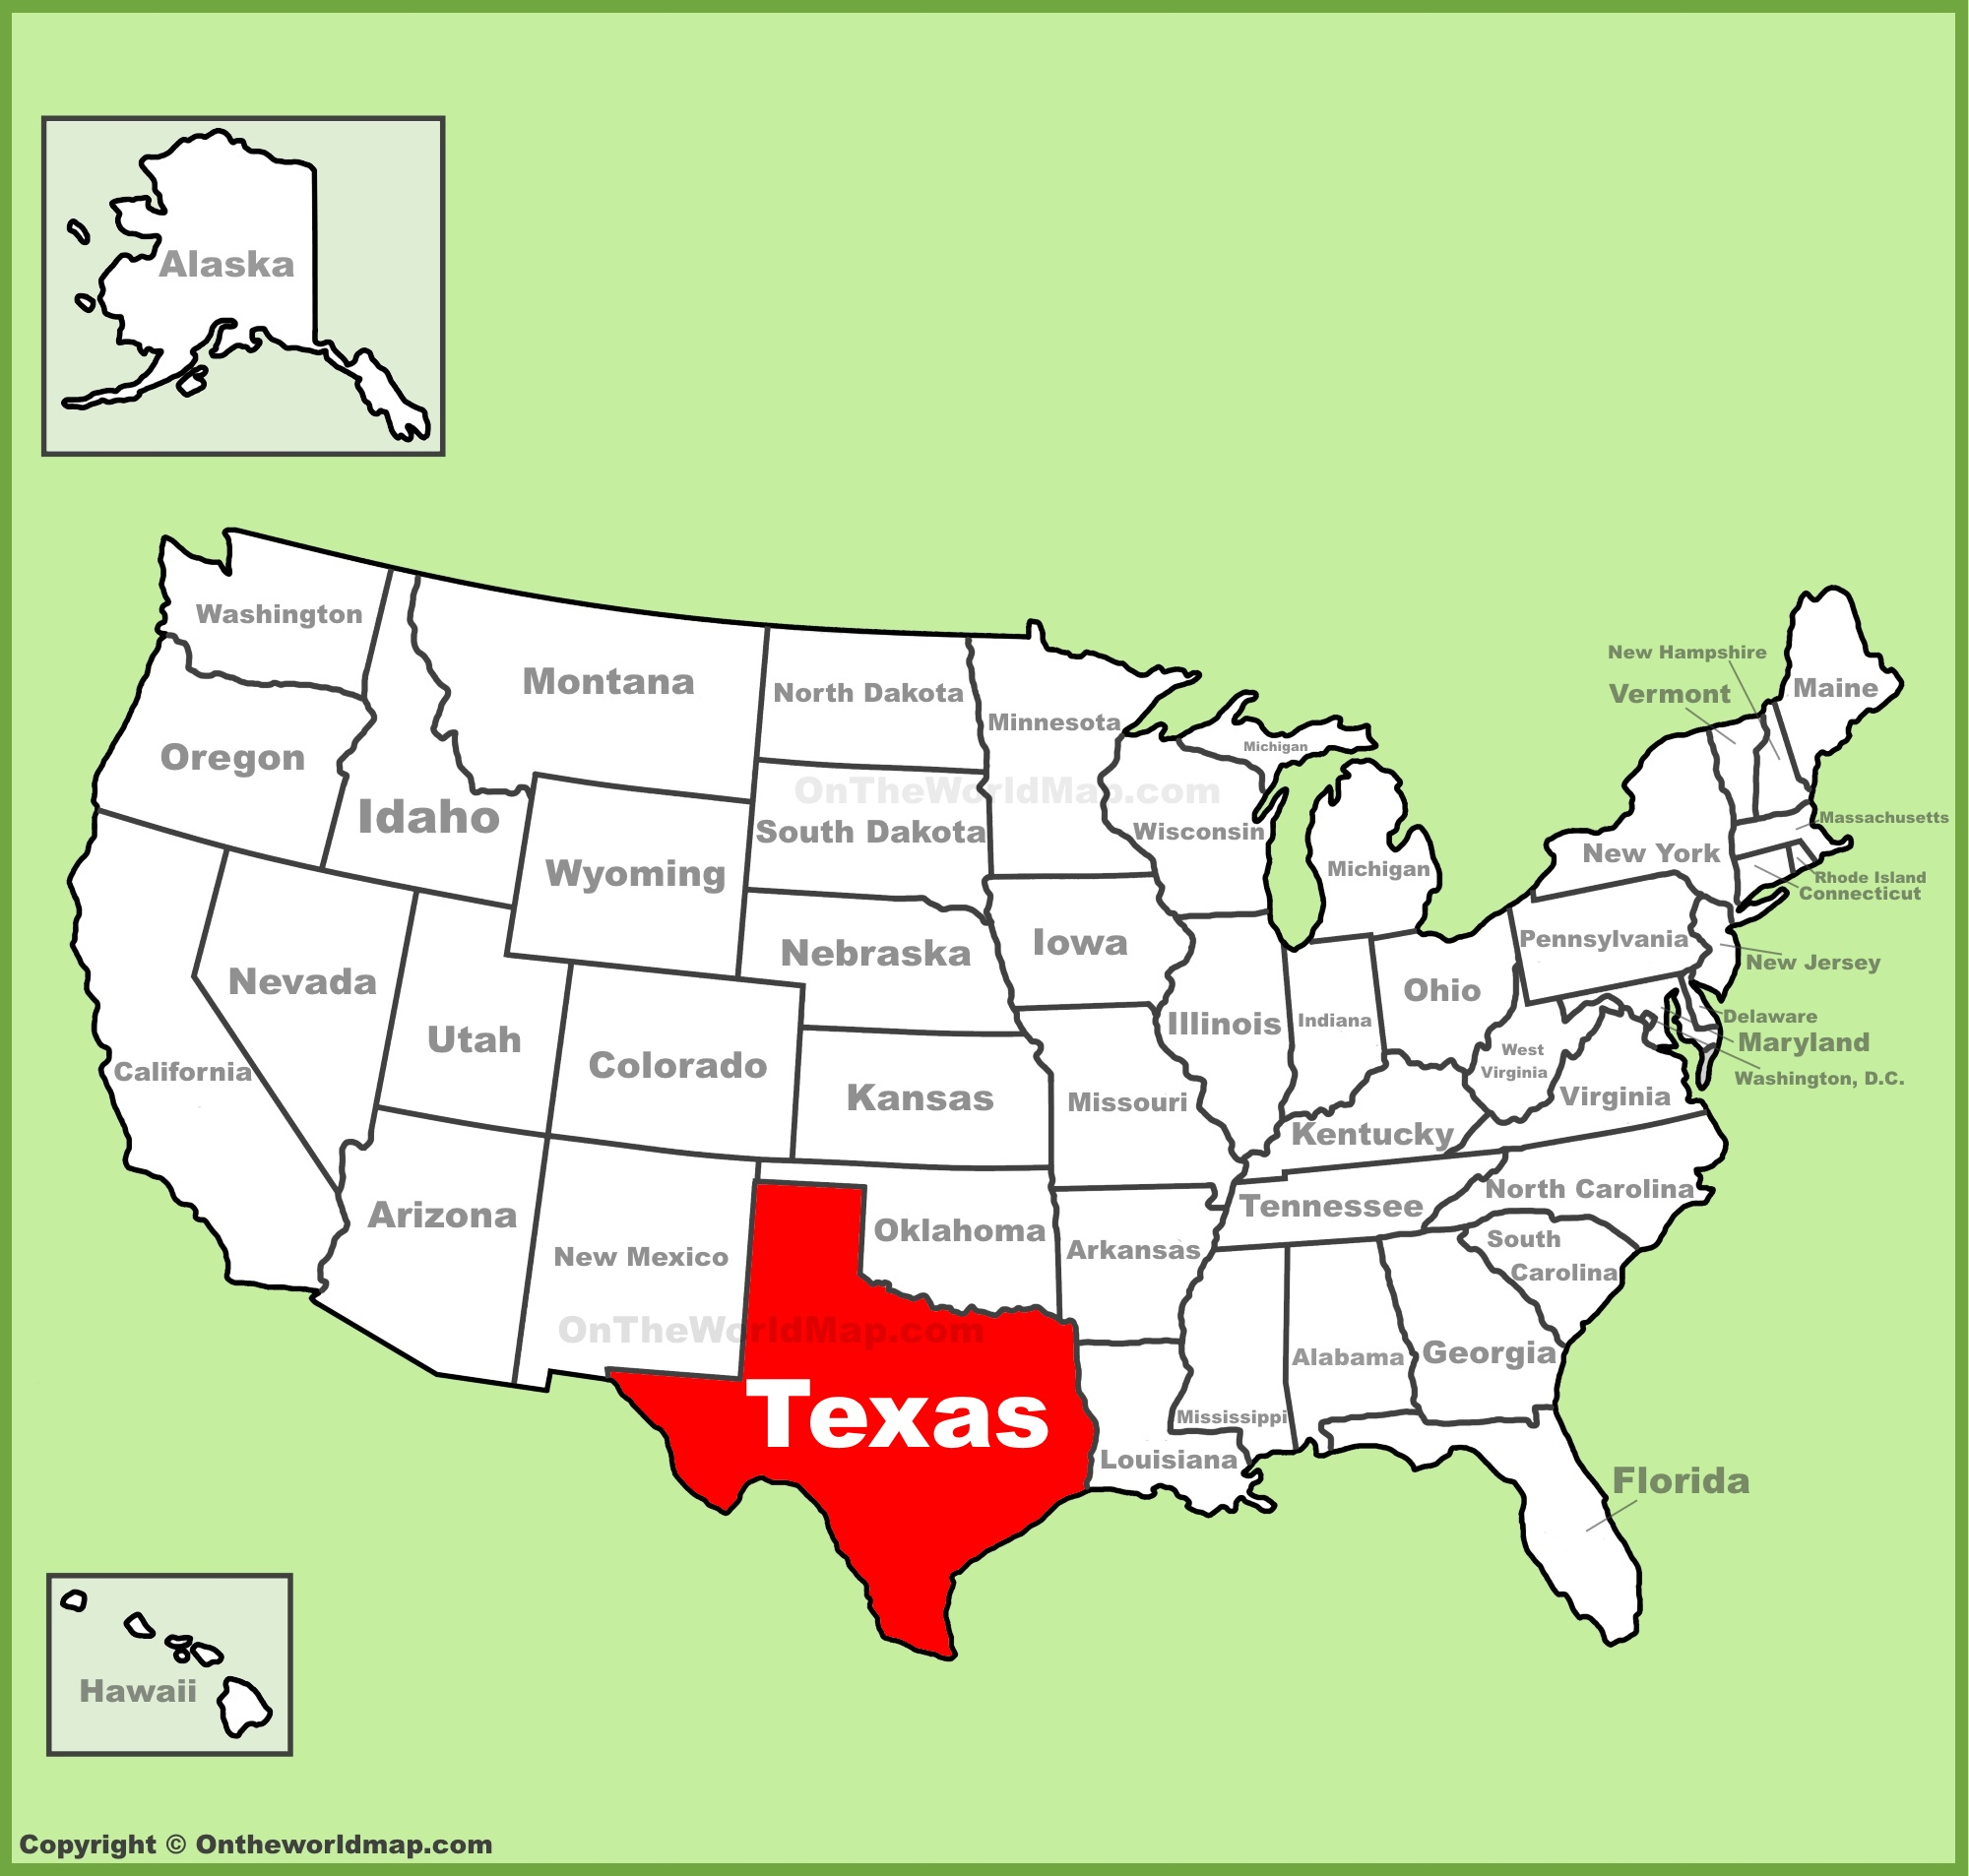 Texas Location On The US Map - Map of texax